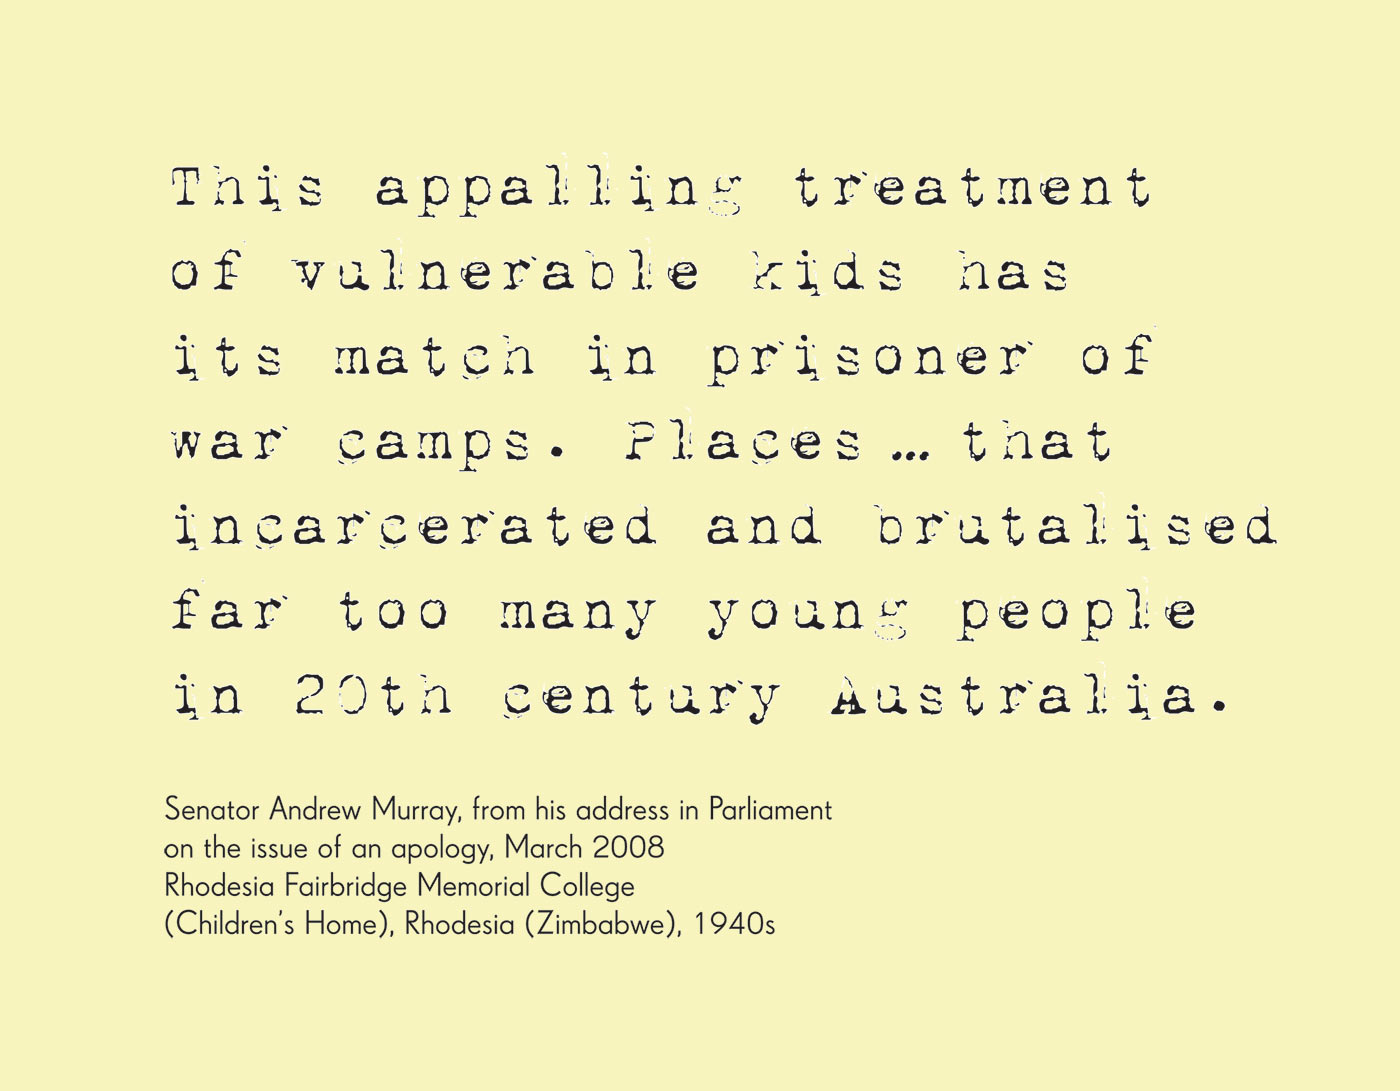 Exhibition graphic panel that reads: 'This appalling treatment of vulnerable kids has its match in prisoner of war camps. Places ... that incarcerated and brutalised far too many young people in 20th century Australia', attributed to 'Senator Andrew Murray, from his address in Parliament on the issue of an apology, March 2008, Rhodesia Fairbridge Memorial College (Children's Home), Rhodesia (Zimbabwe), 1940s'. - click to view larger image